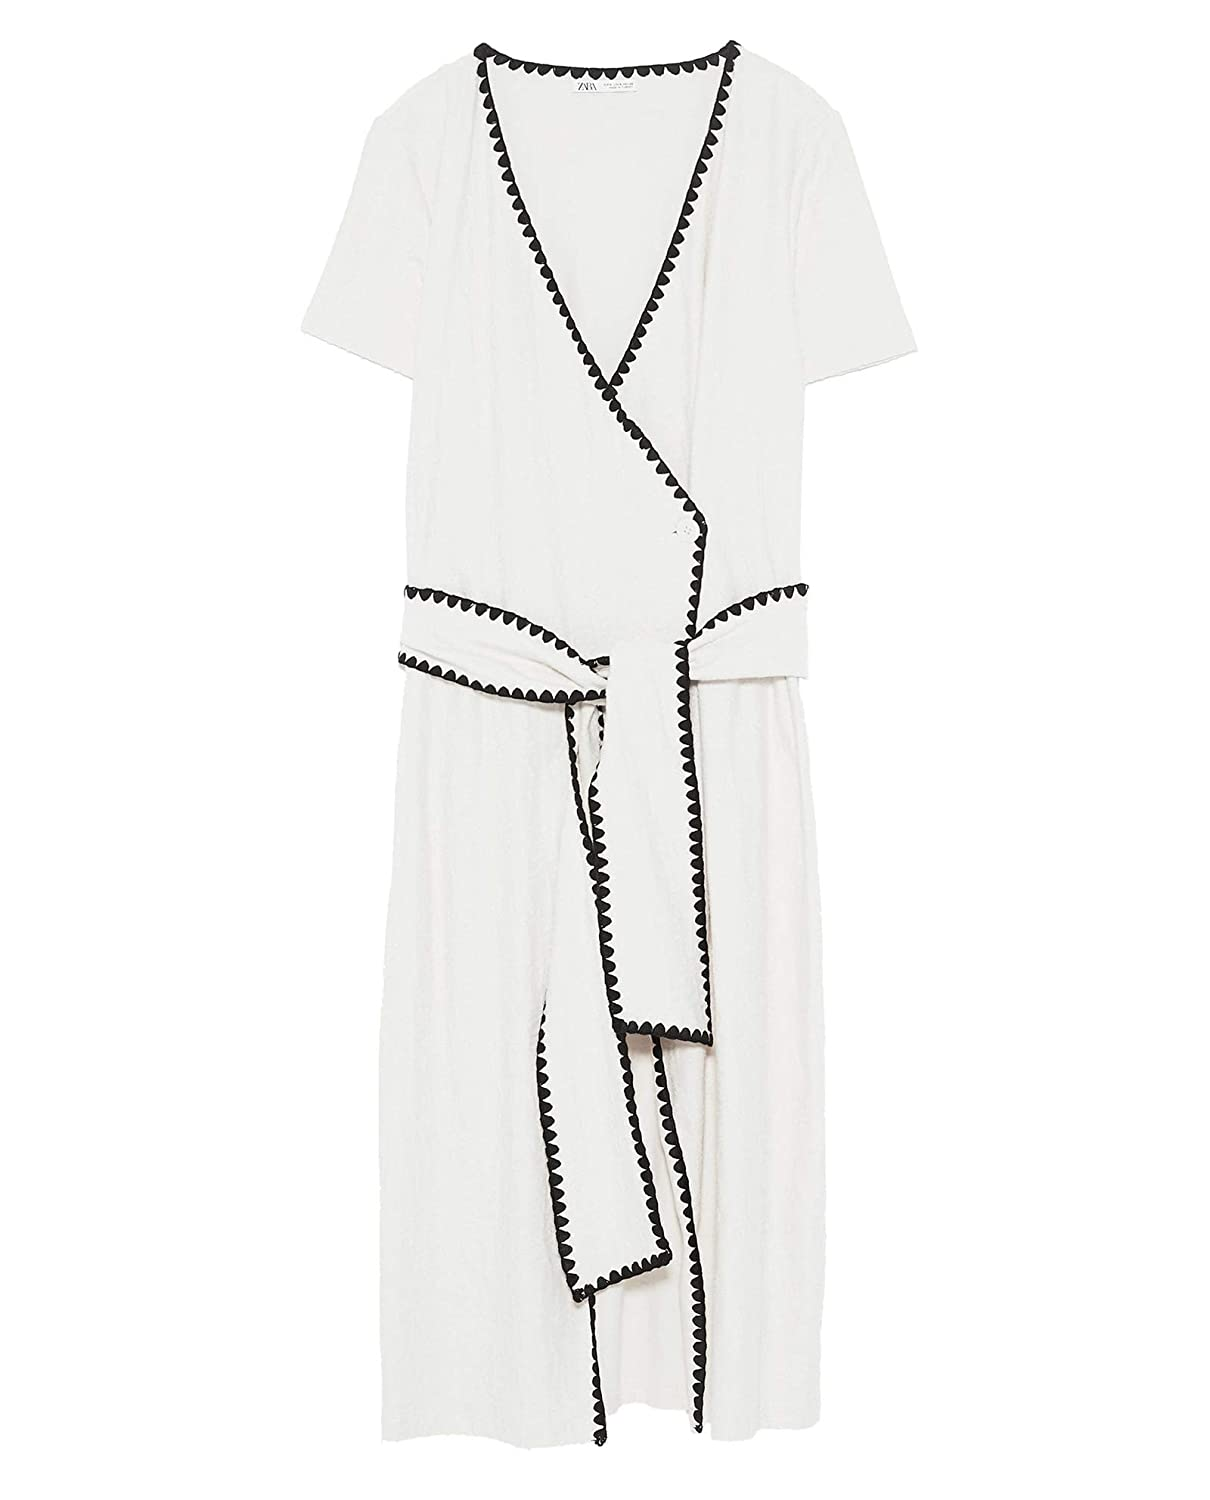 2d3067a6 Zara Women Dress with Contrast Topstitching 1198/002 Off-White at ...